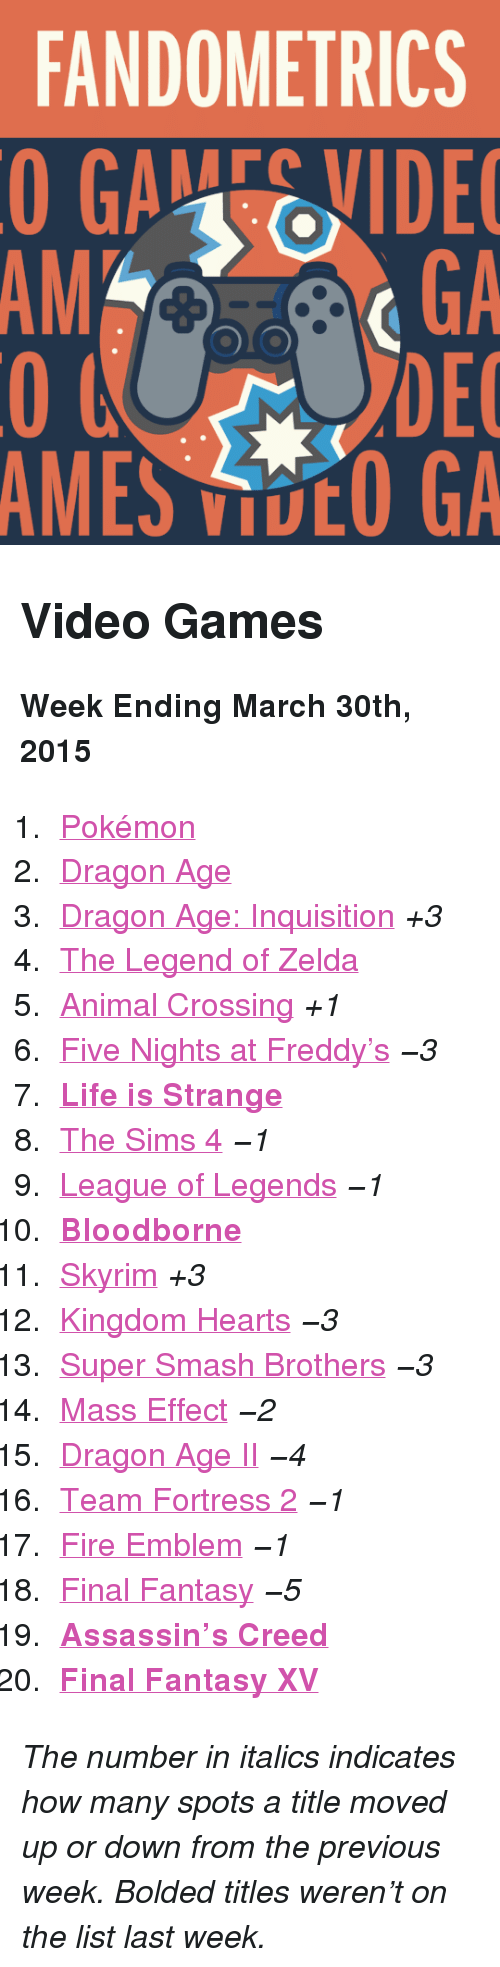 """Fire, League of Legends, and Life: FANDOMETRICS  GAEVIDE  GA  DEC  AMES VOO GA  AM <h2>Video Games</h2><p><b>Week Ending March 30th, 2015</b></p><ol><li><a href=""""http://www.tumblr.com/search/pokemon"""">Pokémon</a></li><li><a href=""""http://www.tumblr.com/search/dragon%20age"""">Dragon Age</a> </li><li><a href=""""http://www.tumblr.com/search/dragon%20age%20inquisition"""">Dragon Age: Inquisition</a> <i>+3</i></li><li><a href=""""http://www.tumblr.com/search/legend%20of%20zelda"""">The Legend of Zelda</a></li><li><a href=""""http://www.tumblr.com/search/acnl"""">Animal Crossing</a> <i>+1</i></li><li><a href=""""http://www.tumblr.com/search/five%20nights%20at%20freddy's"""">Five Nights at Freddy's</a> <i>−3</i></li><li><a href=""""http://www.tumblr.com/search/life%20is%20strange""""><b>Life is Strange</b></a></li><li><a href=""""http://www.tumblr.com/search/sims%204"""">The Sims 4</a> <i>−1</i></li><li><a href=""""http://www.tumblr.com/search/league%20of%20legends"""">League of Legends</a> <i>−1</i></li><li><a href=""""http://www.tumblr.com/search/bloodborne""""><b>Bloodborne</b></a></li><li><a href=""""http://www.tumblr.com/search/skyrim"""">Skyrim</a><i> +3</i></li><li><a href=""""http://www.tumblr.com/search/kingdom%20hearts"""">Kingdom Hearts</a> <i>−3</i></li><li><a href=""""http://www.tumblr.com/search/super%20smash%20bros"""">Super Smash Brothers</a> <i>−3</i></li><li><a href=""""http://www.tumblr.com/search/mass%20effect"""">Mass Effect</a> <i>−2</i></li><li><a href=""""http://www.tumblr.com/search/dragon%20age%202"""">Dragon Age II</a> <i>−4</i></li><li><a href=""""http://www.tumblr.com/search/tf2"""">Team Fortress 2</a> <i>−1</i></li><li><a href=""""http://www.tumblr.com/search/fire%20emblem"""">Fire Emblem</a> <i>−1</i></li><li><a href=""""http://www.tumblr.com/search/final%20fantasy"""">Final Fantasy</a> <i>−5</i></li><li><a href=""""http://www.tumblr.com/search/assassin's%20creed""""><b>Assassin's Creed</b></a></li><li><a href=""""http://www.tumblr.com/search/final%20fantasy%20xv""""><b>Final Fantasy XV</b></a></li></ol><p><i>The number in italics indicates how many s"""